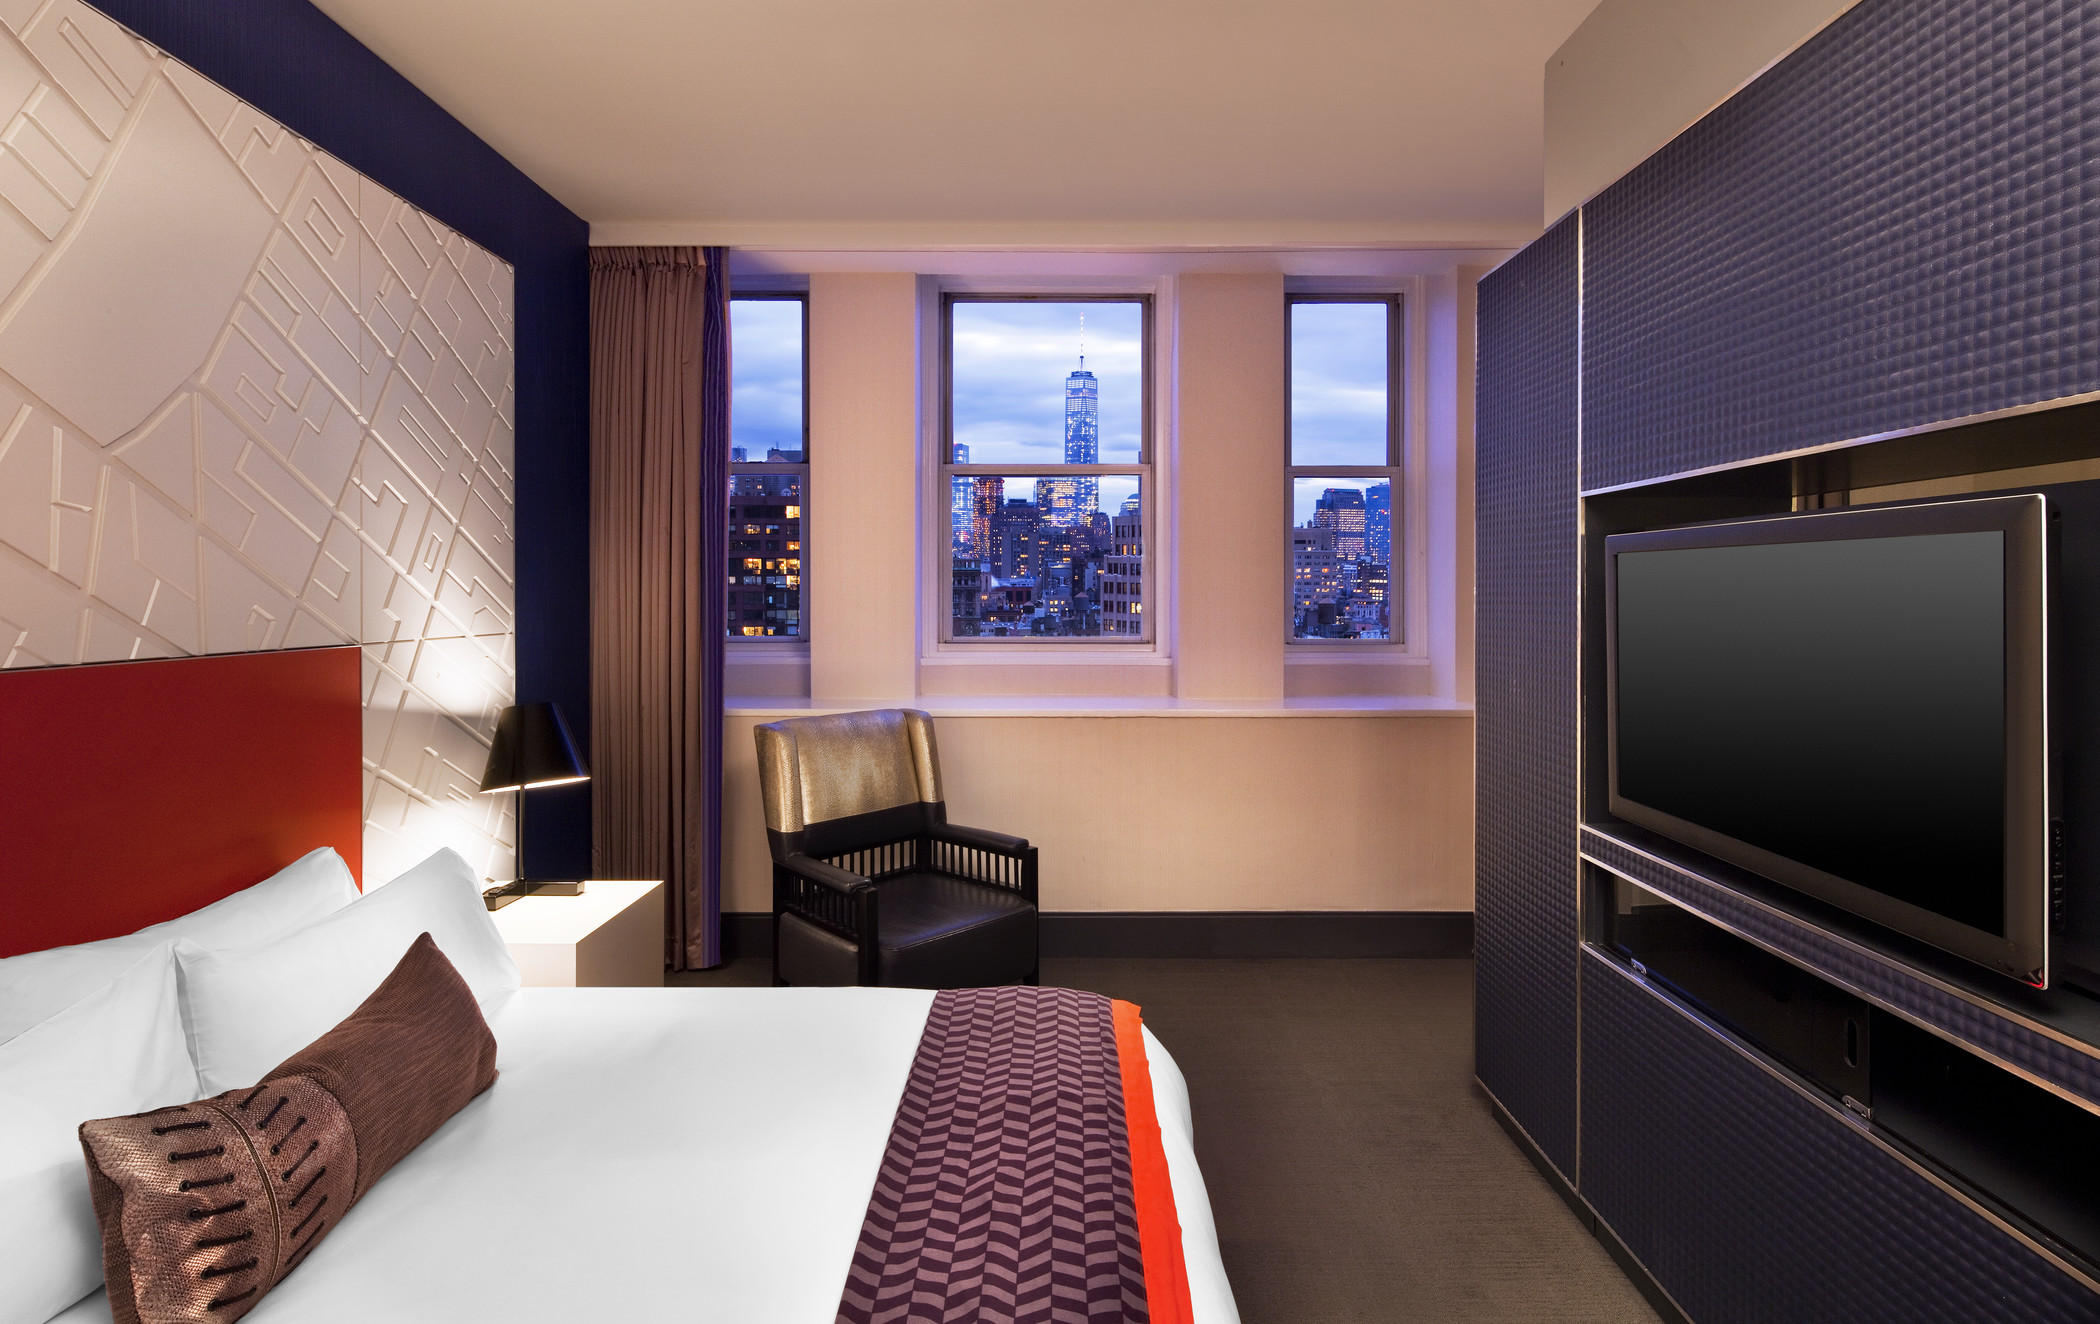 flat screen TV and bed with city view